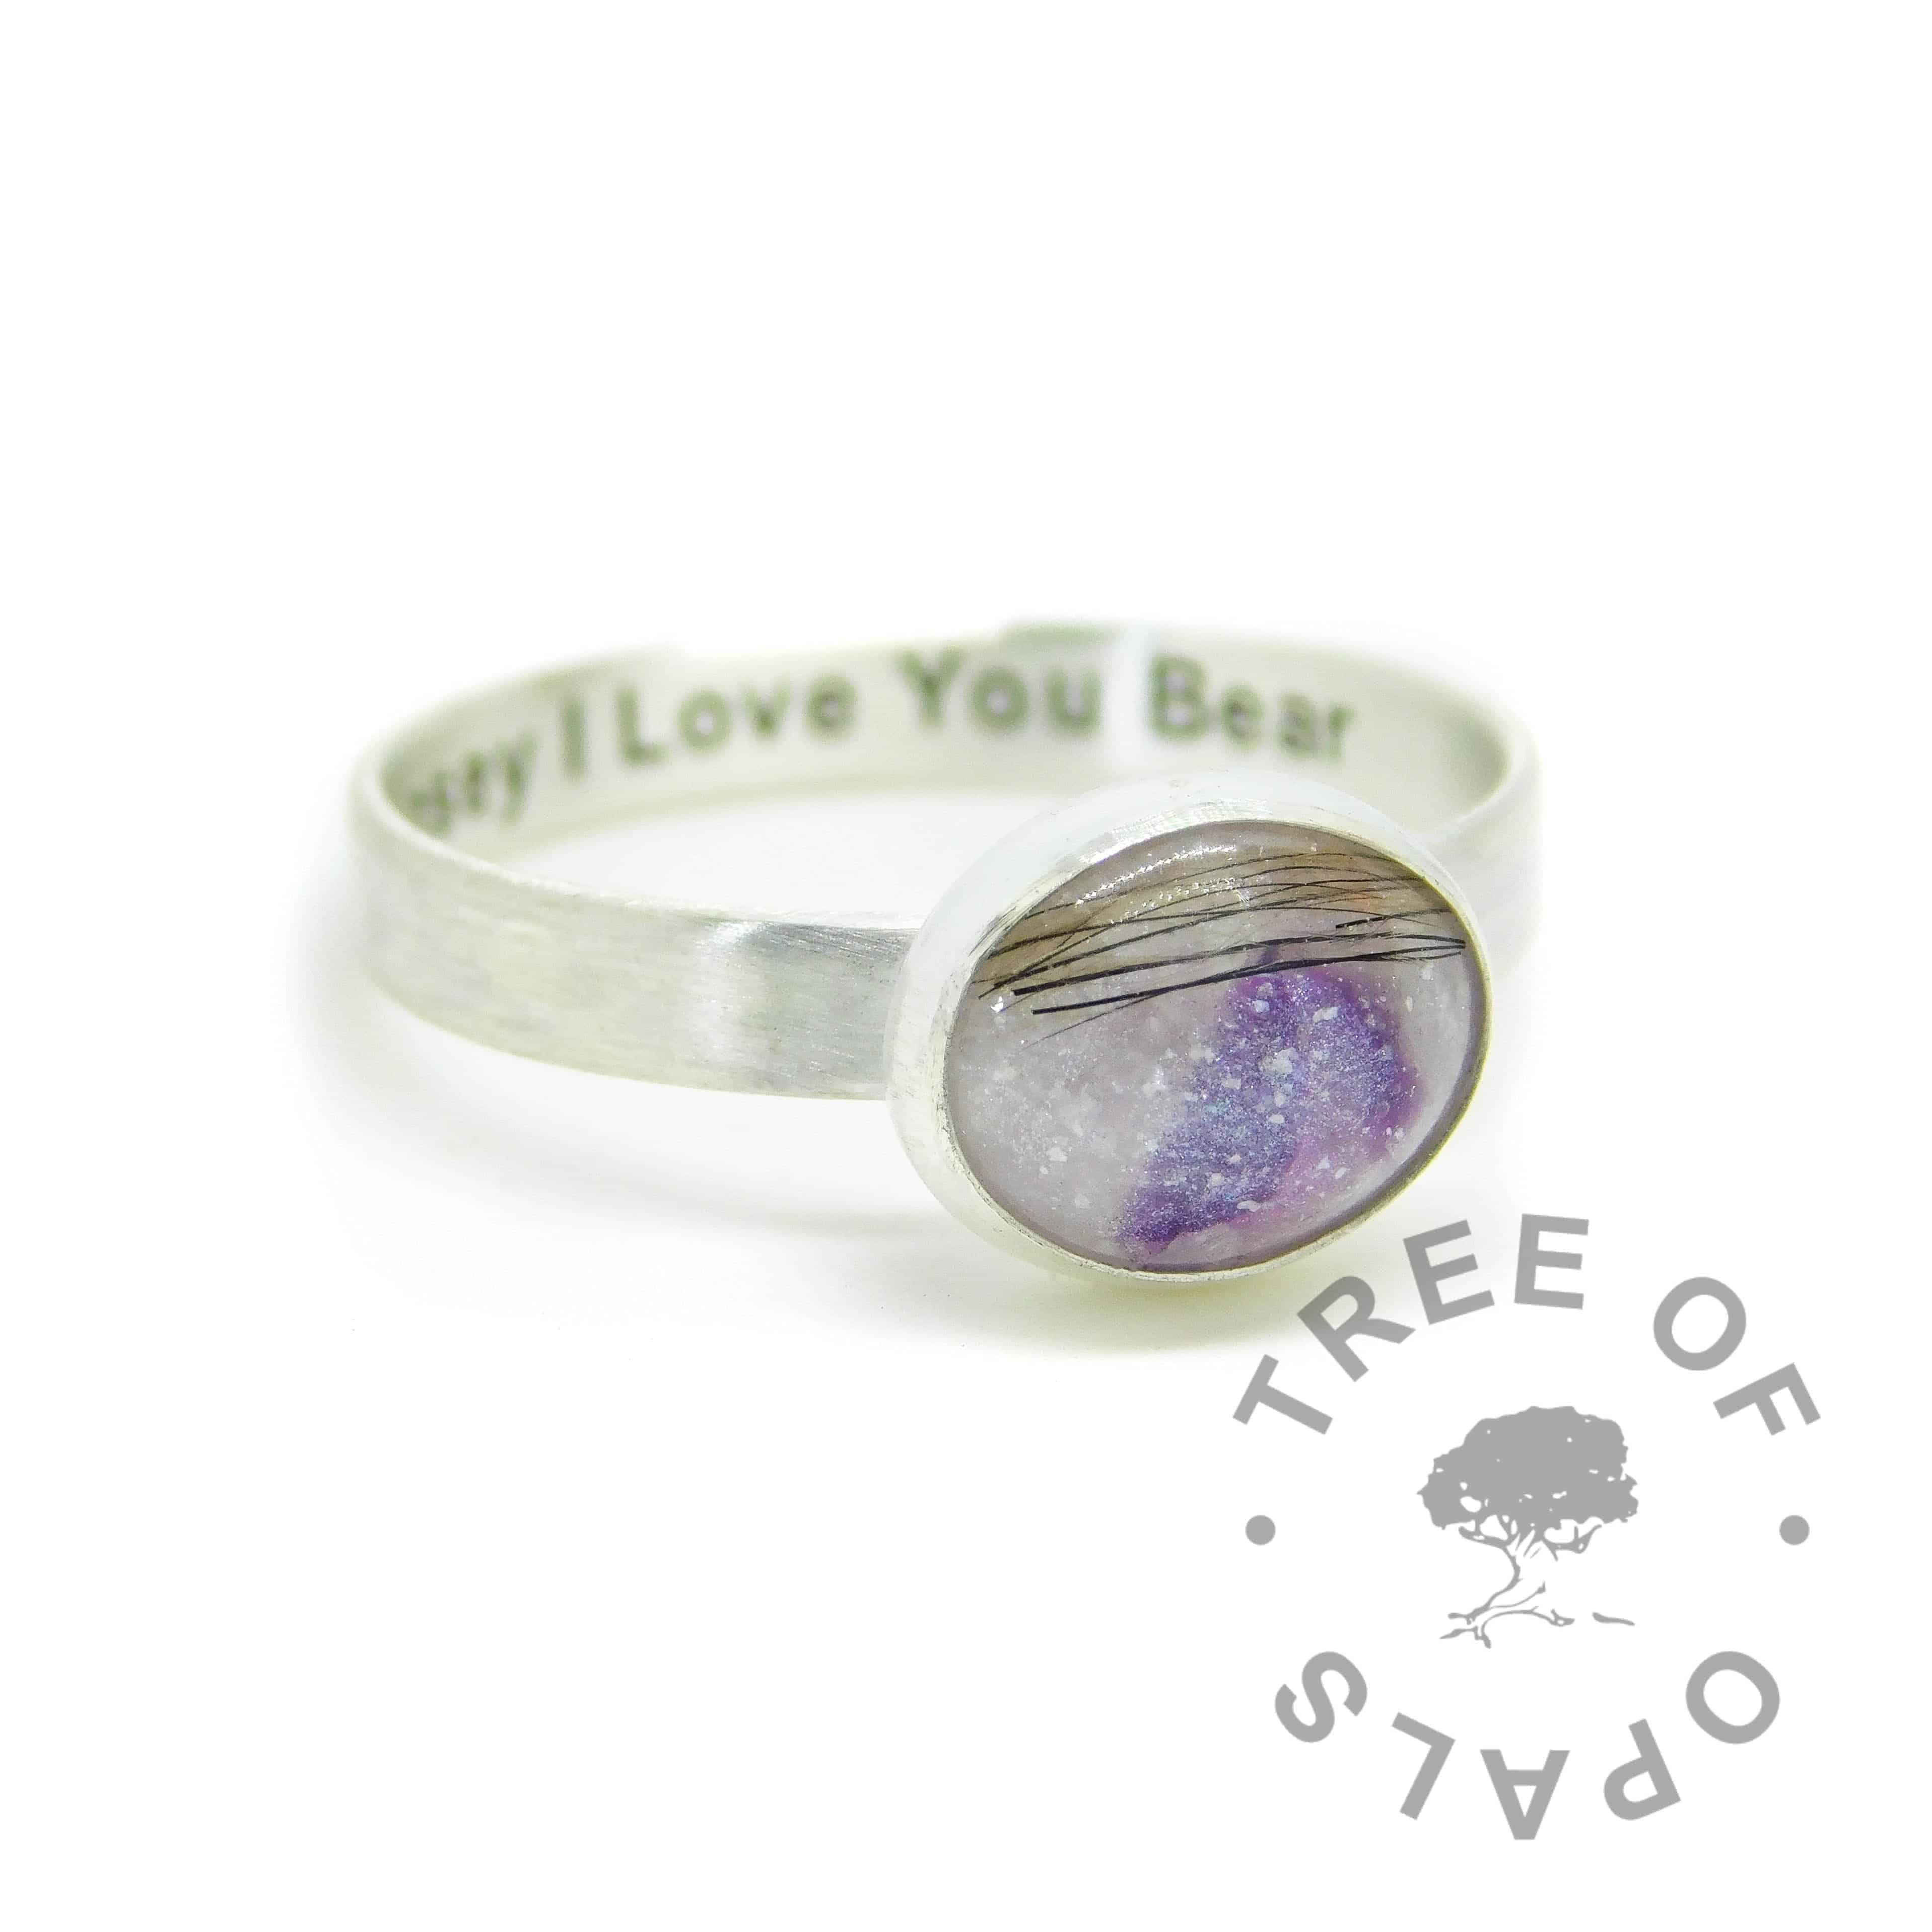 Engraved brushed band lock of hair ring with unicorn white sparkle mix and February birthstone amethyst. Engraved inside in Arial font. Handmade solid sterling silver memorial ring